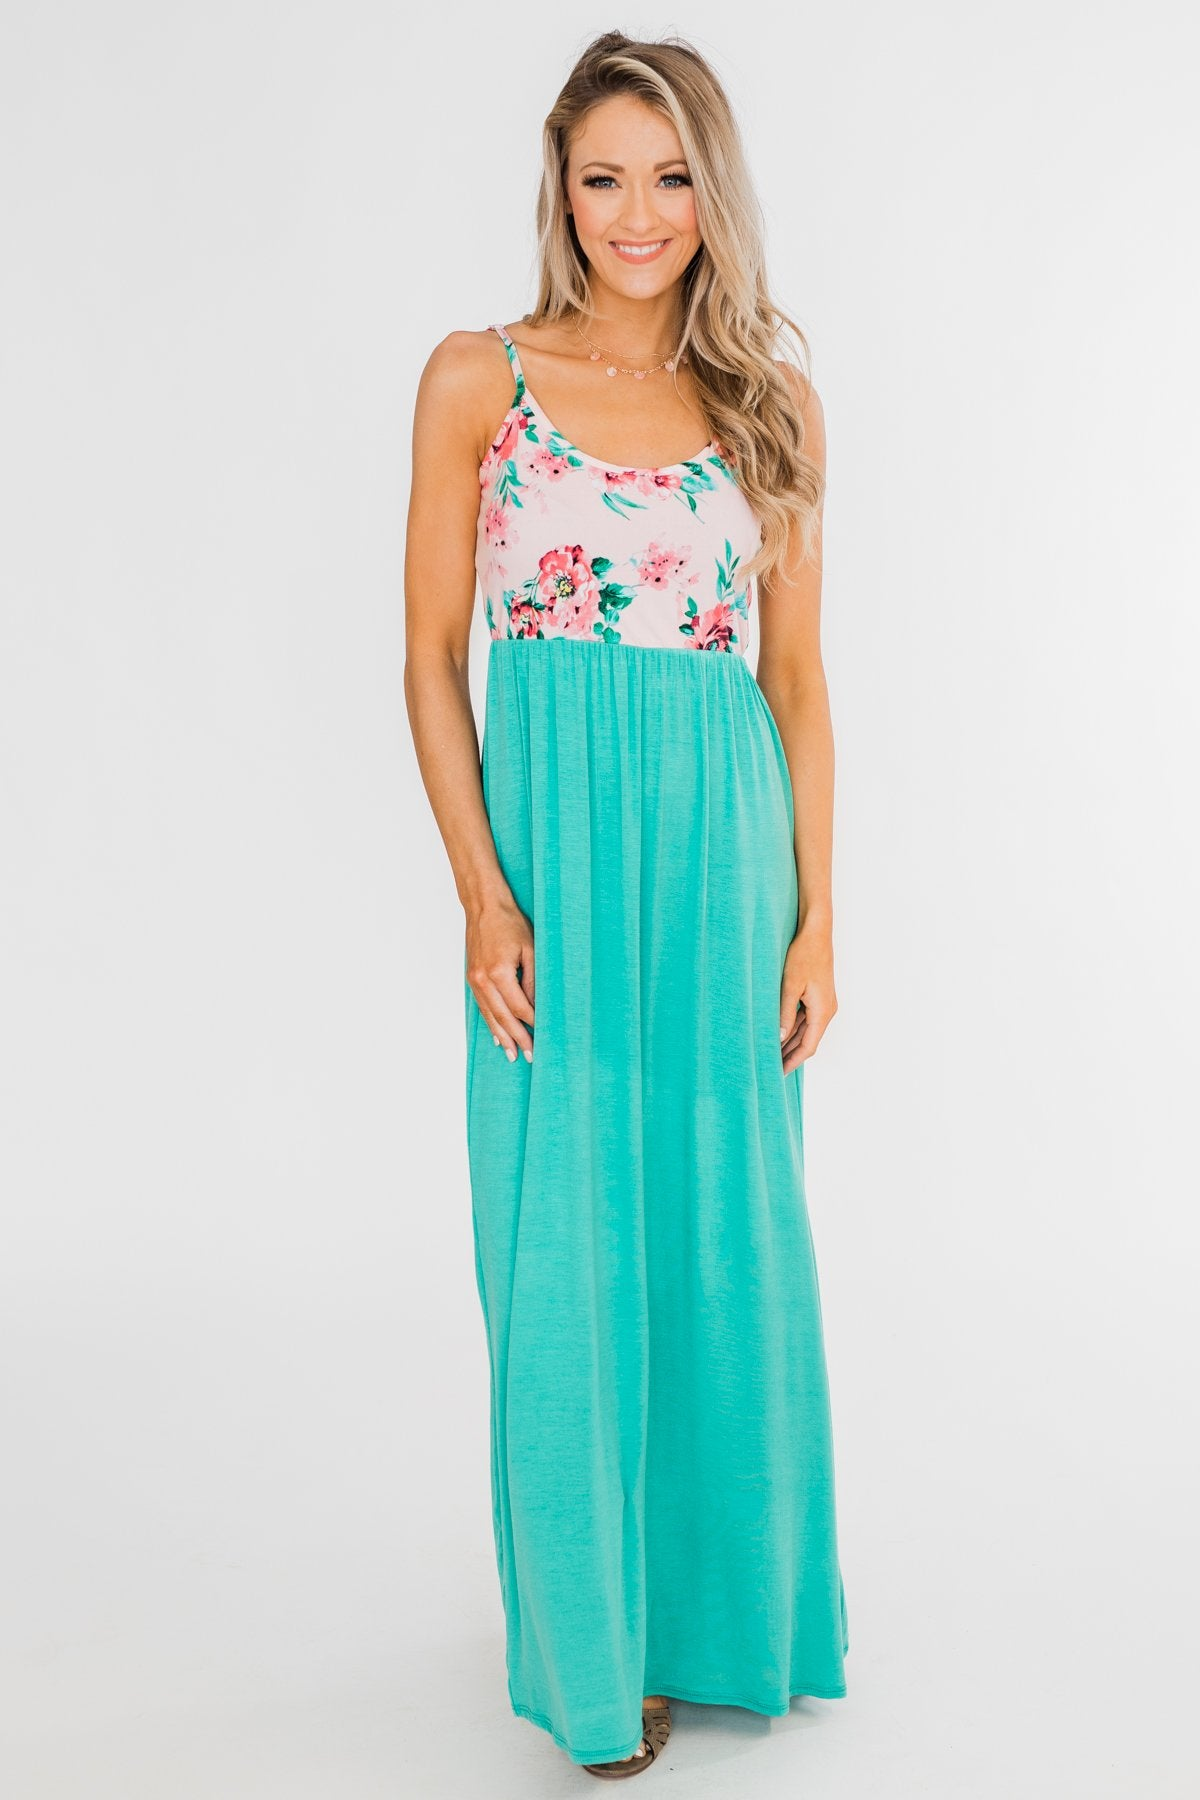 Endless Spring Floral Maxi Dress- Turquoise